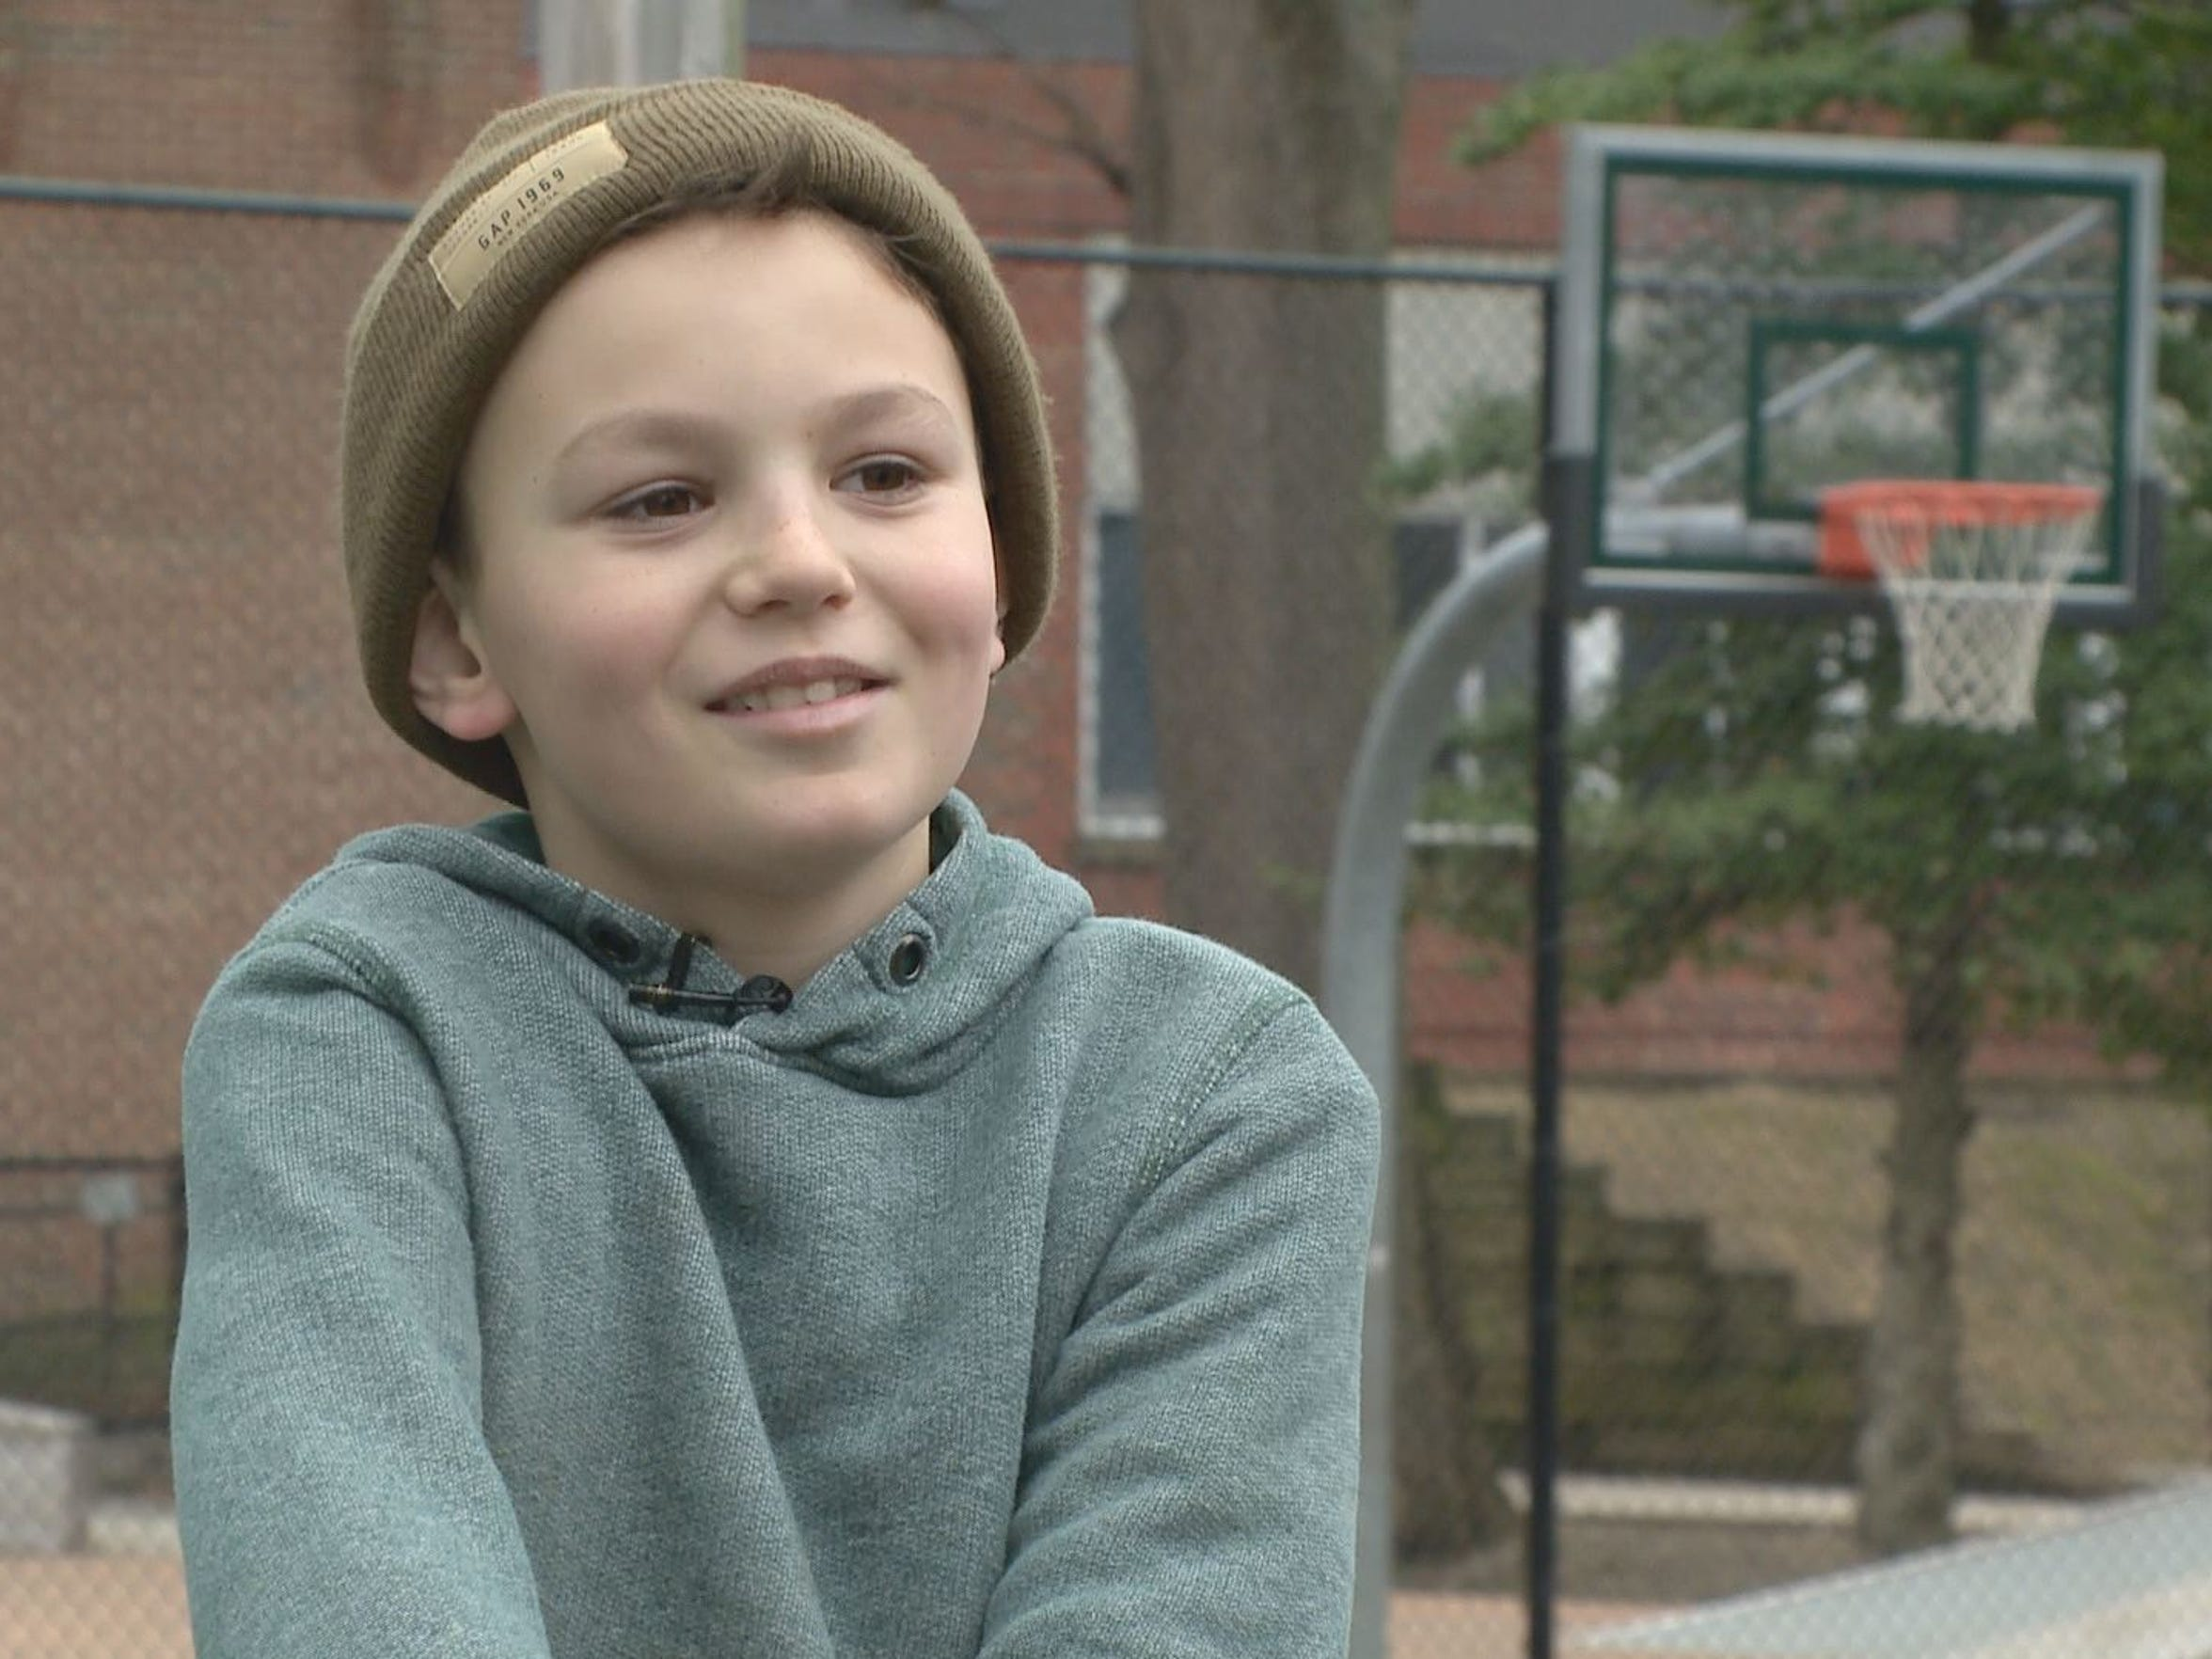 Andrei, age 10, says he feels safe and confident on